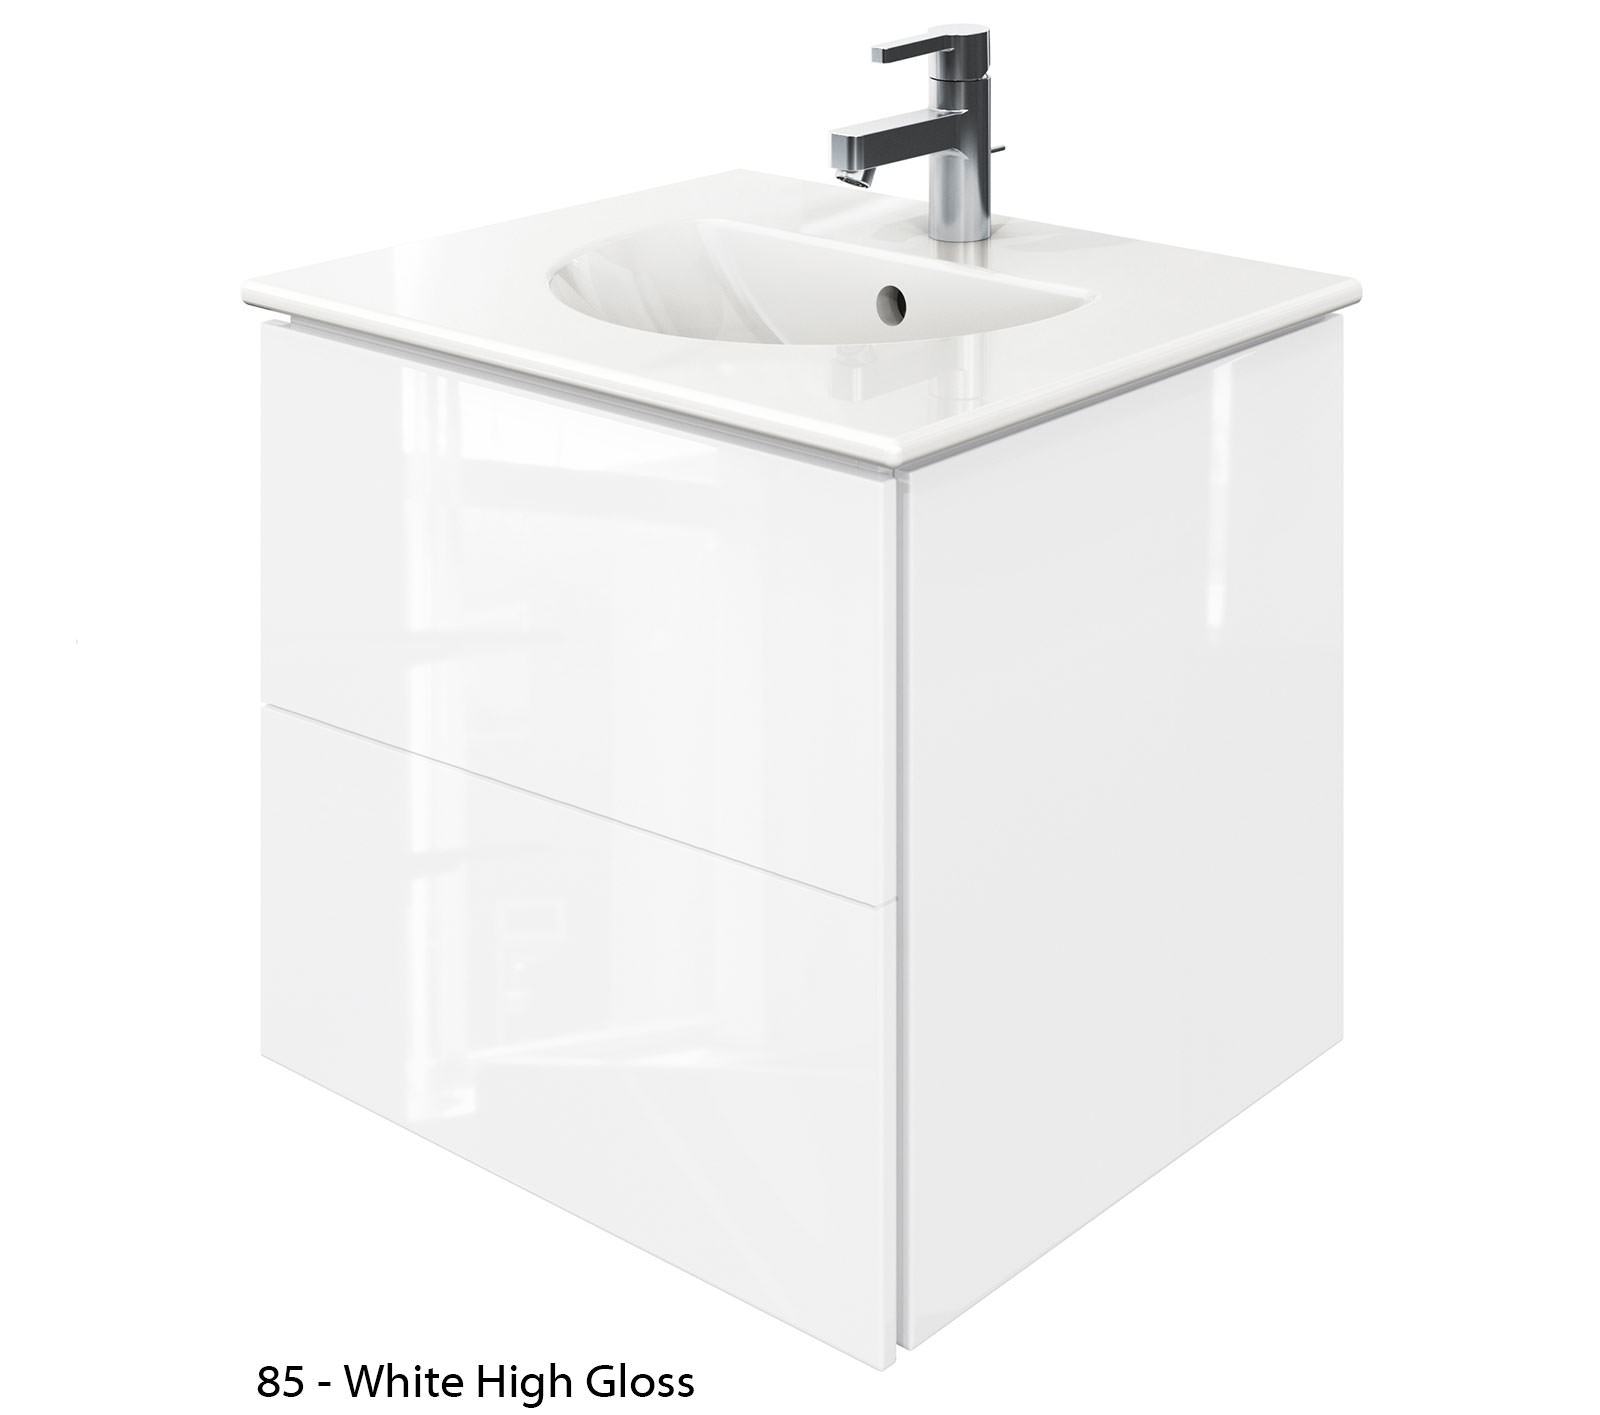 Duravit delos 2 drawers jade high gloss unit with 530mm basin - Duravit bathroom furniture uk ...